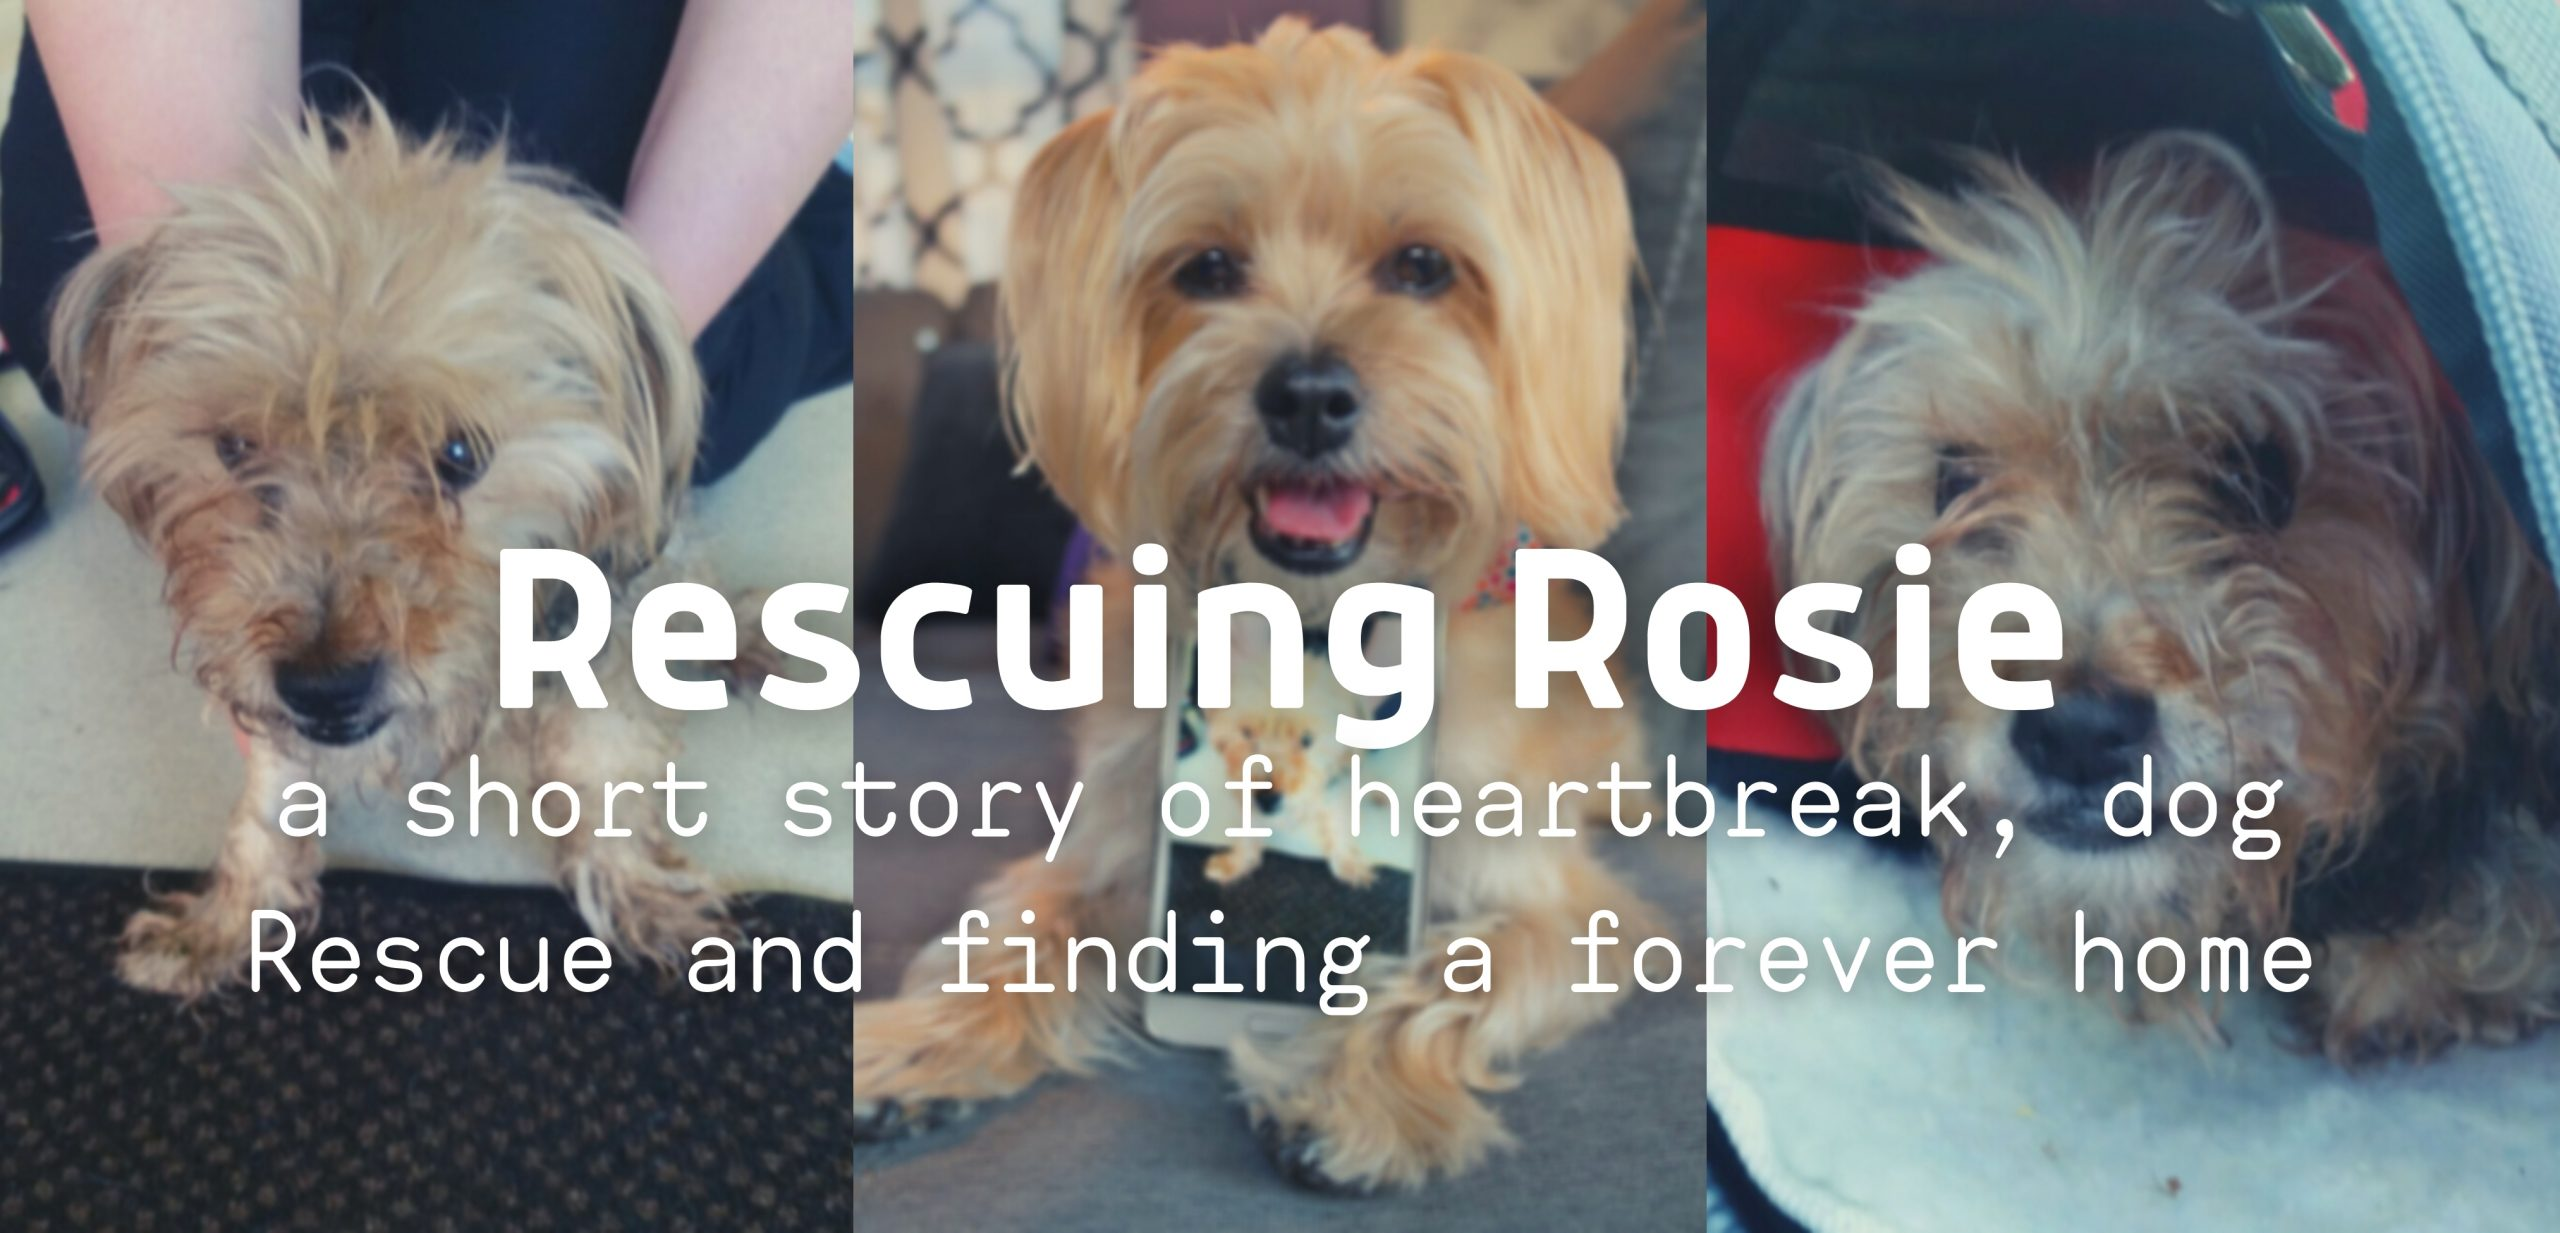 Rescuing Rosie: A Short Story of Heartbreak, Dog Rescue and Finding a Forever Home